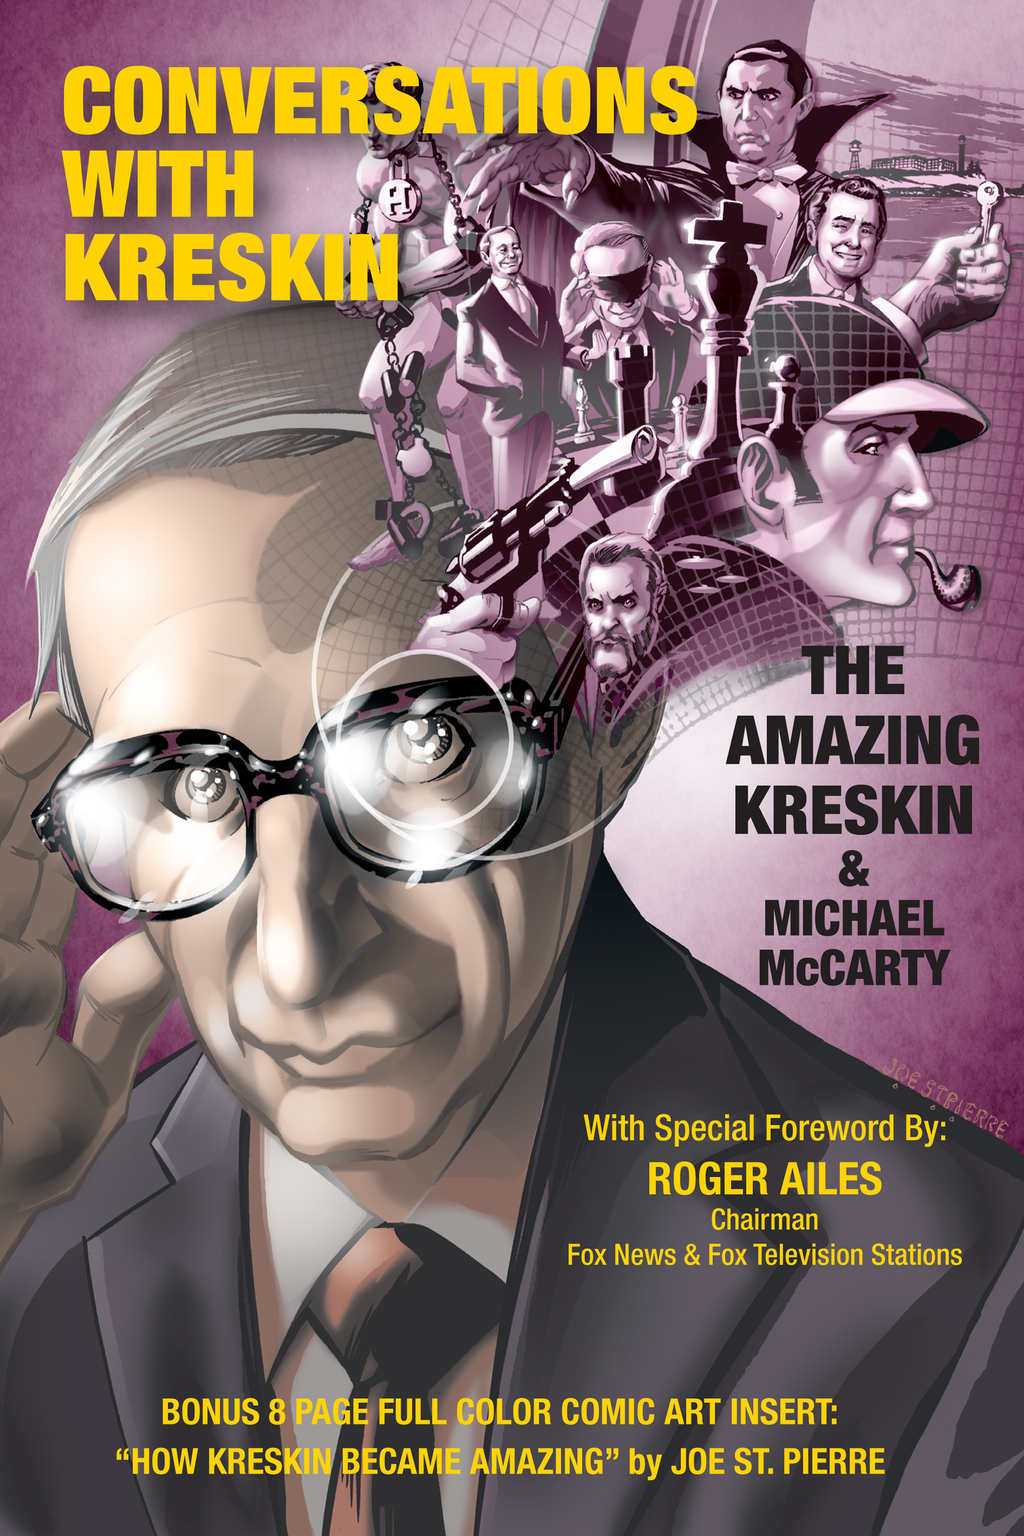 Conversations with Kreskin By: The Amazing Kreskin